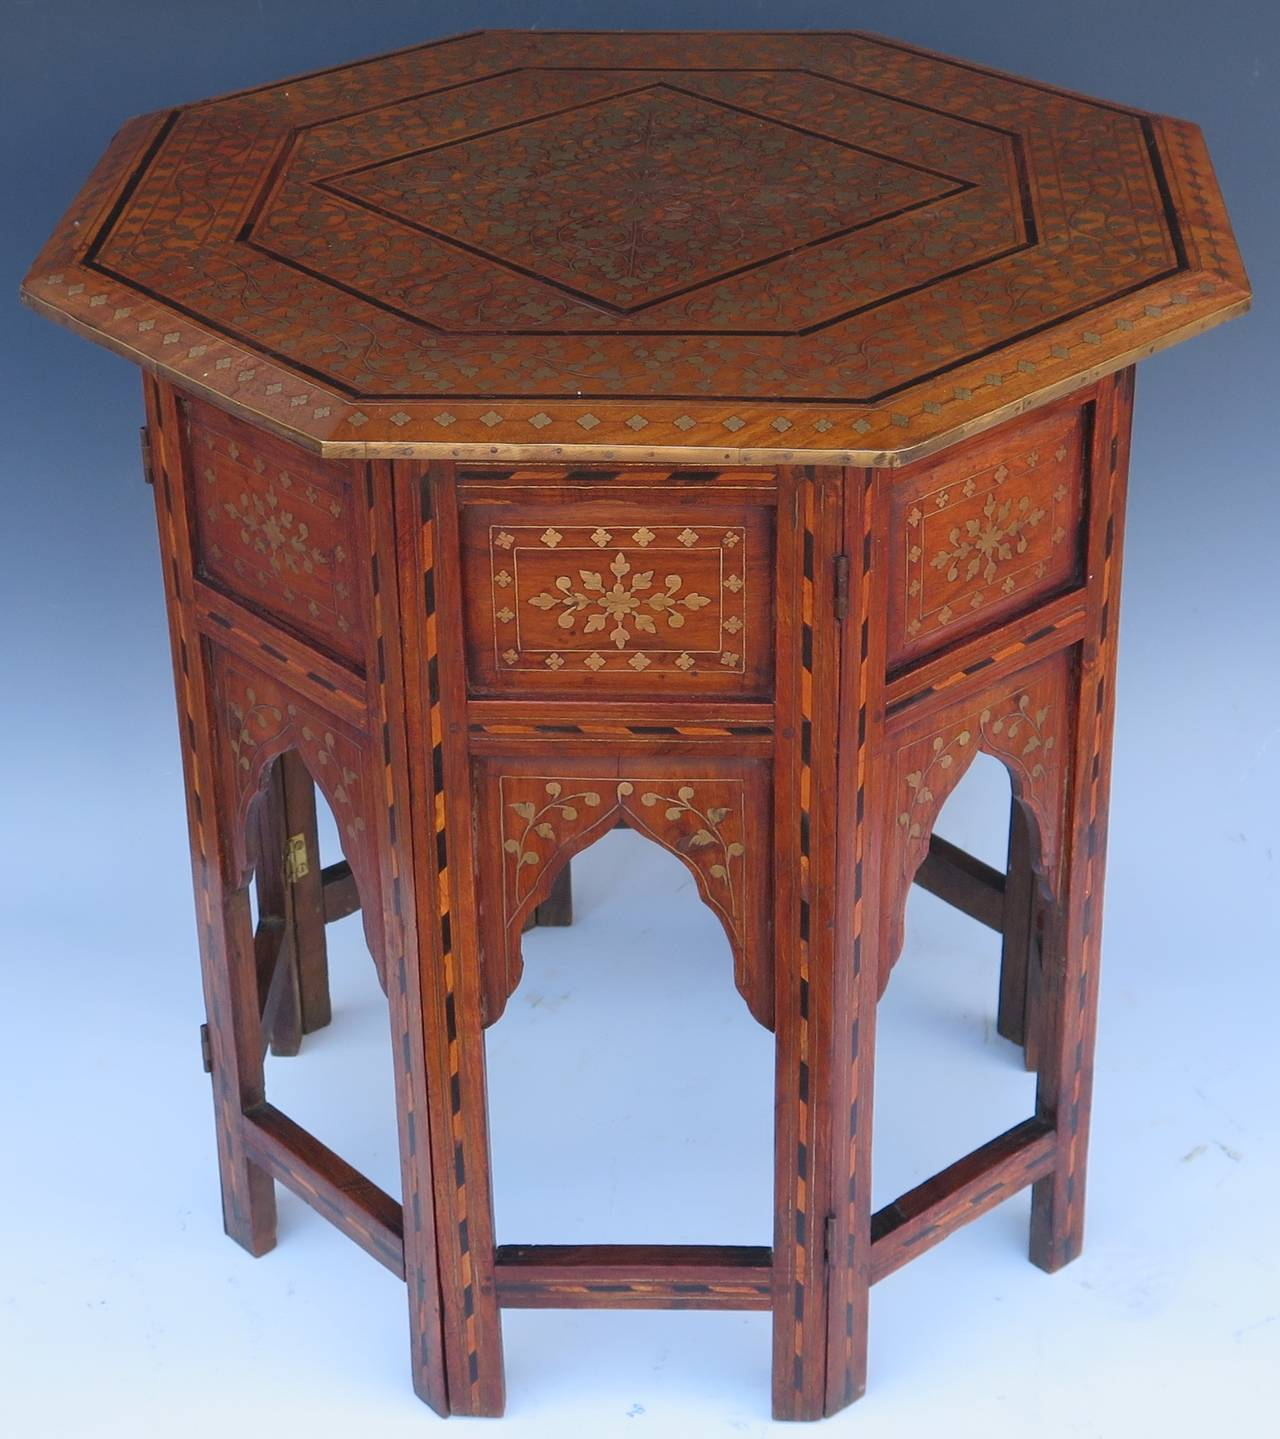 very nice early century anglo brass inlay side table img accent rare with beautiful and details most these storage baskets long wooden craigslist coffee green tiffany lamp shade